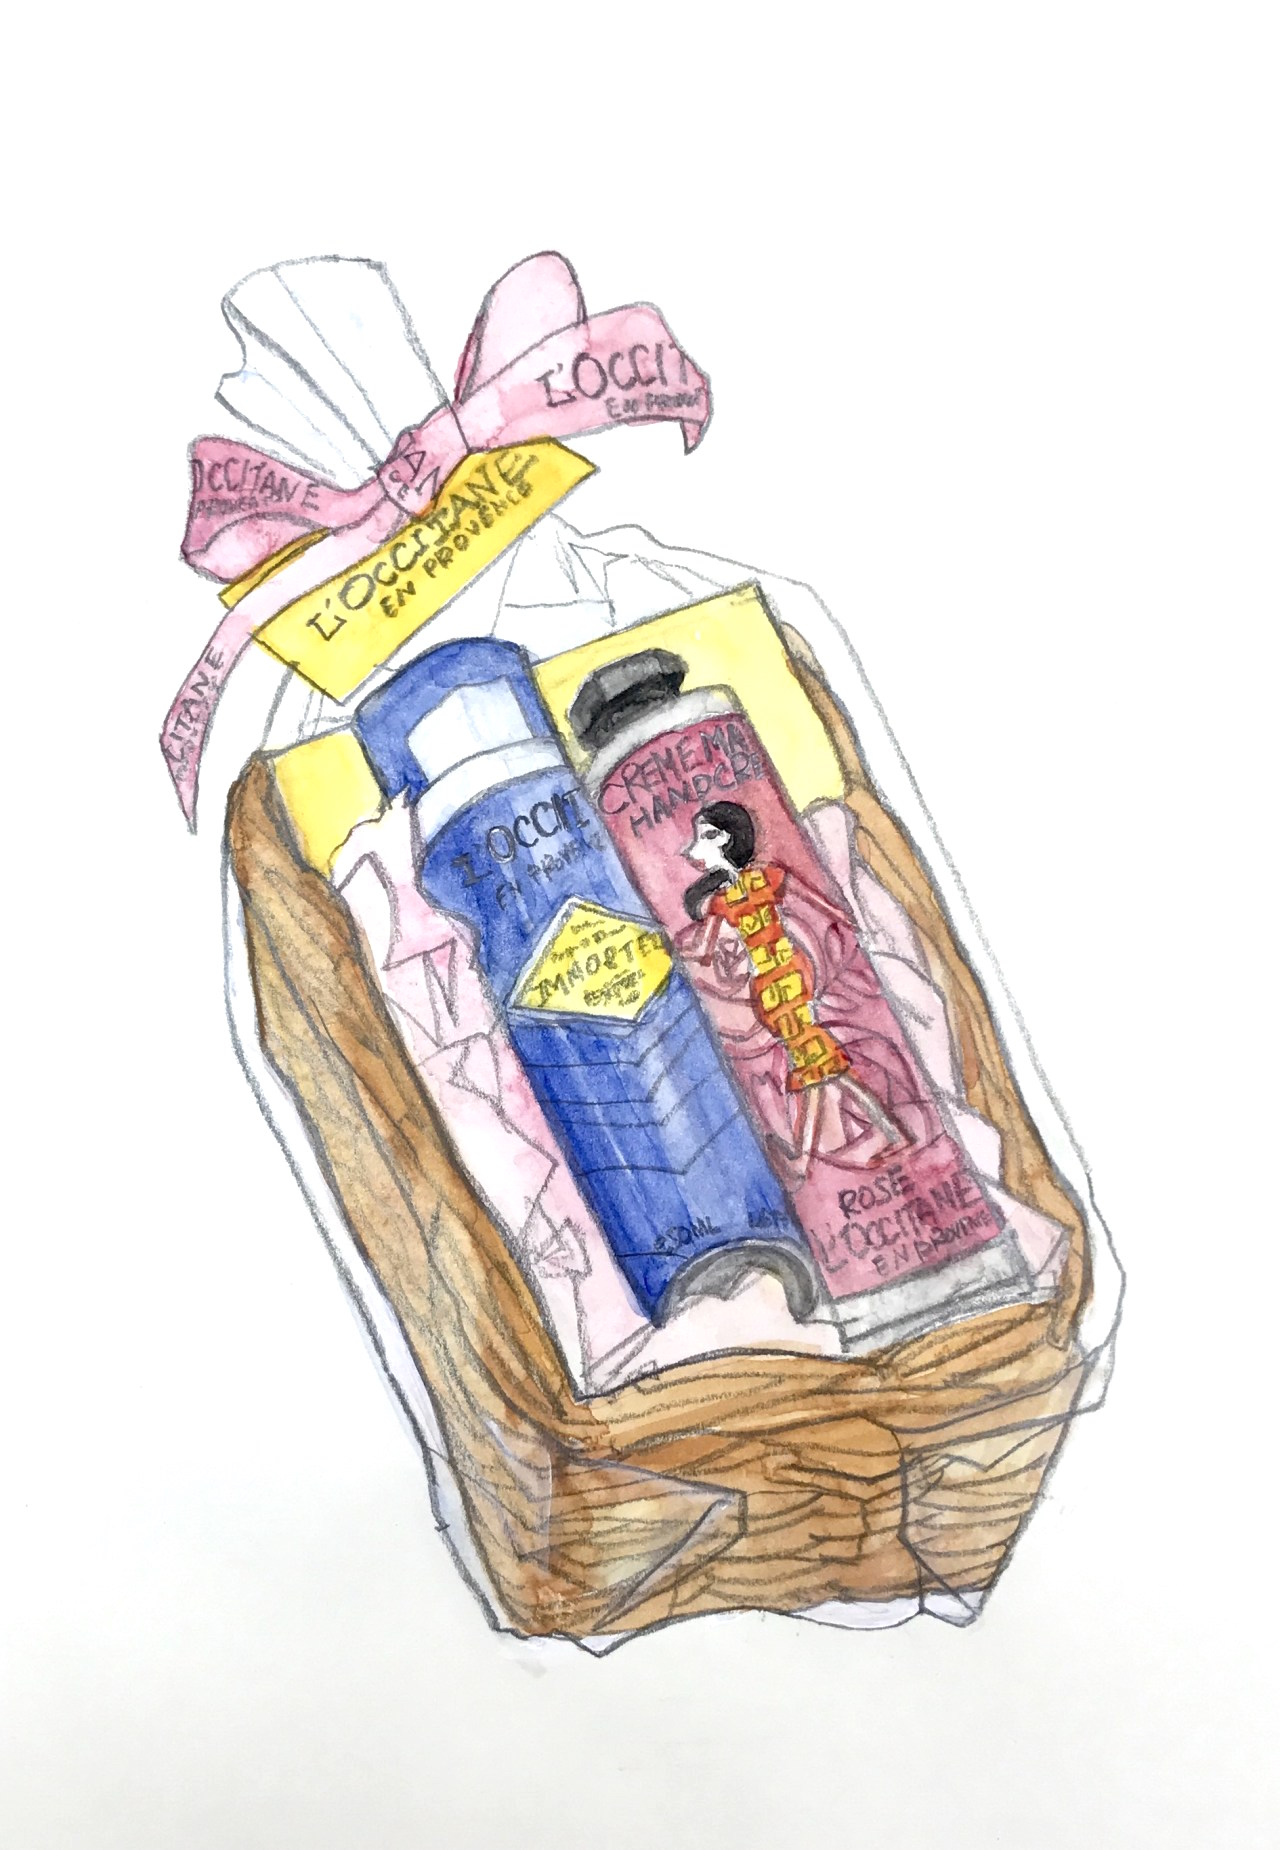 Cosmetics from L'OCCITANE